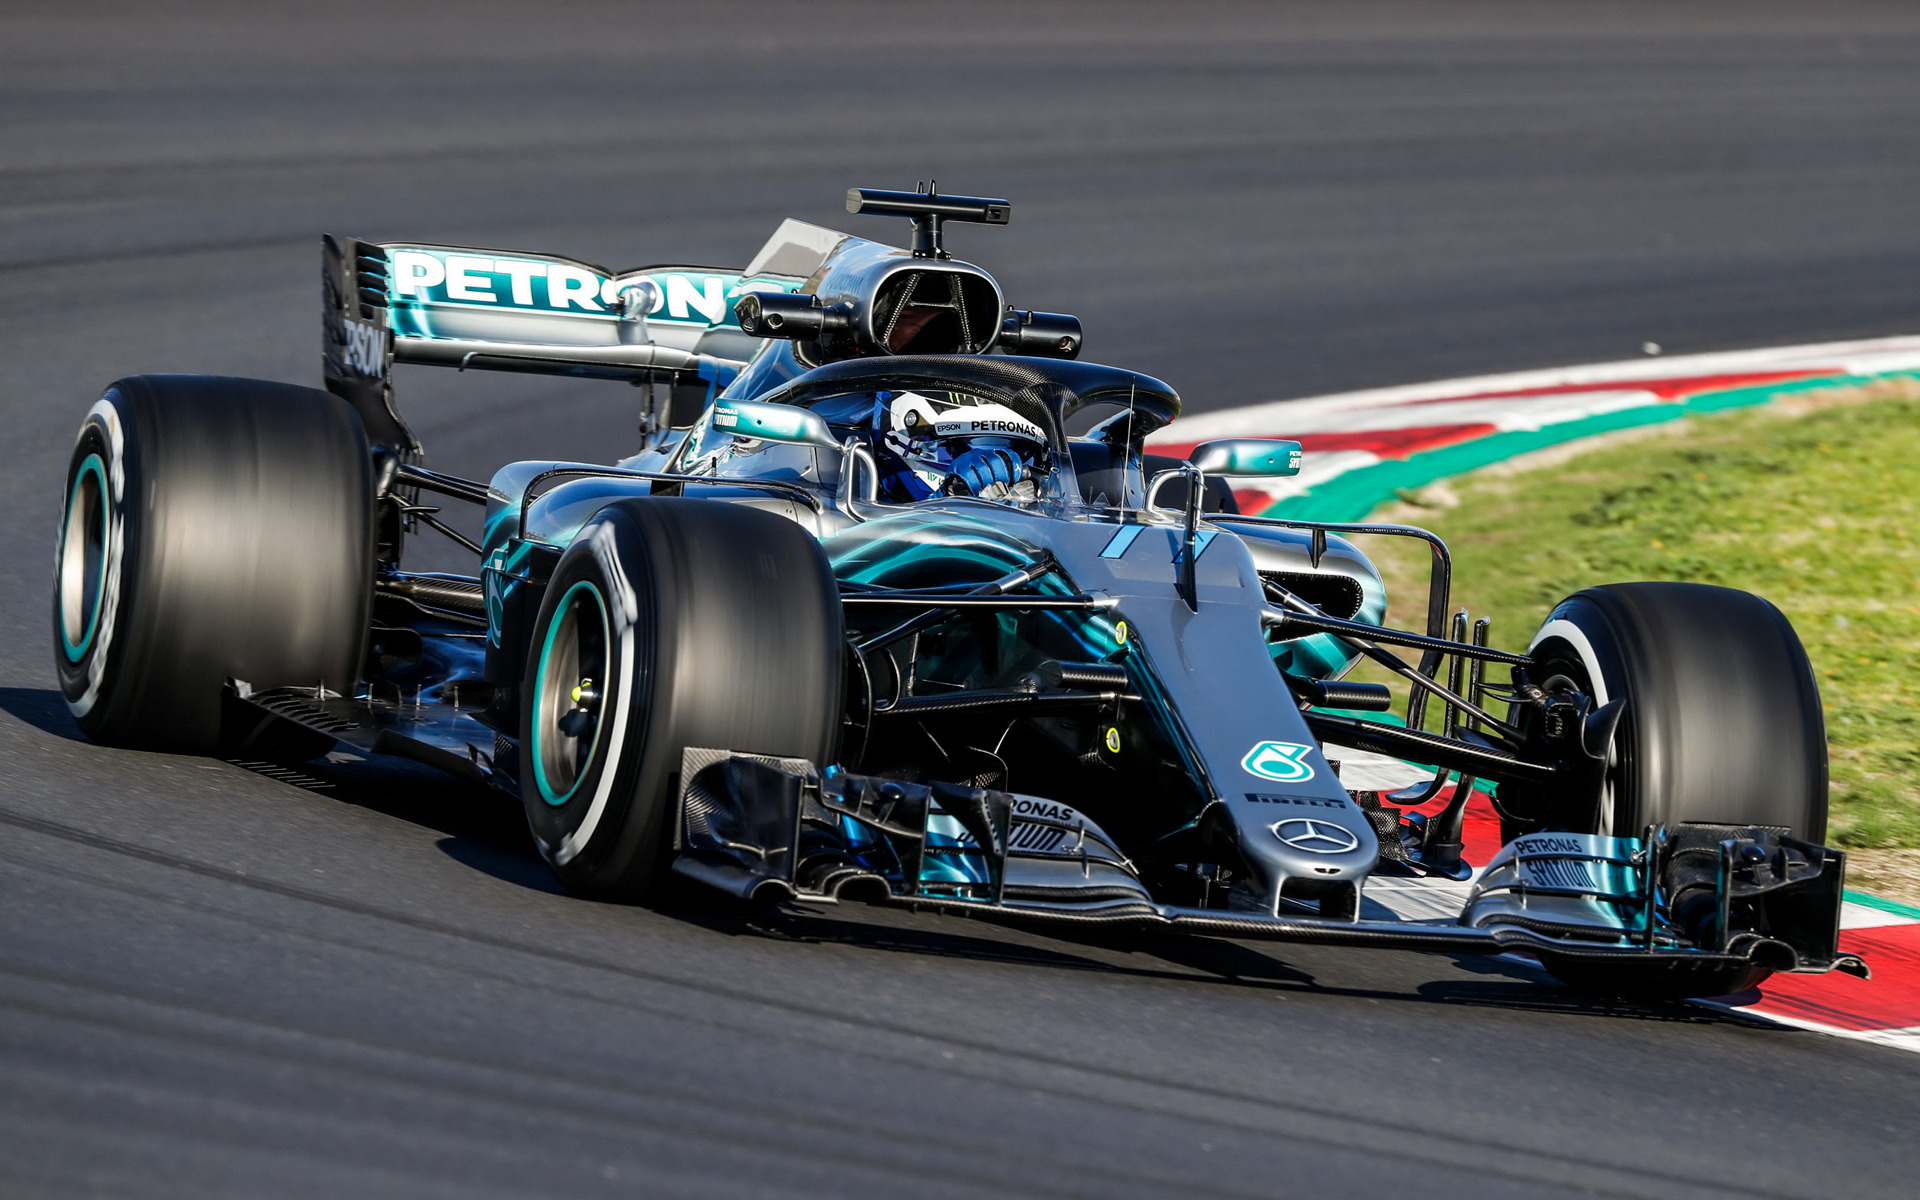 F1 2017 Car Wallpaper Mercedes Amg F1 W09 Eq Power 2018 Wallpapers And Hd